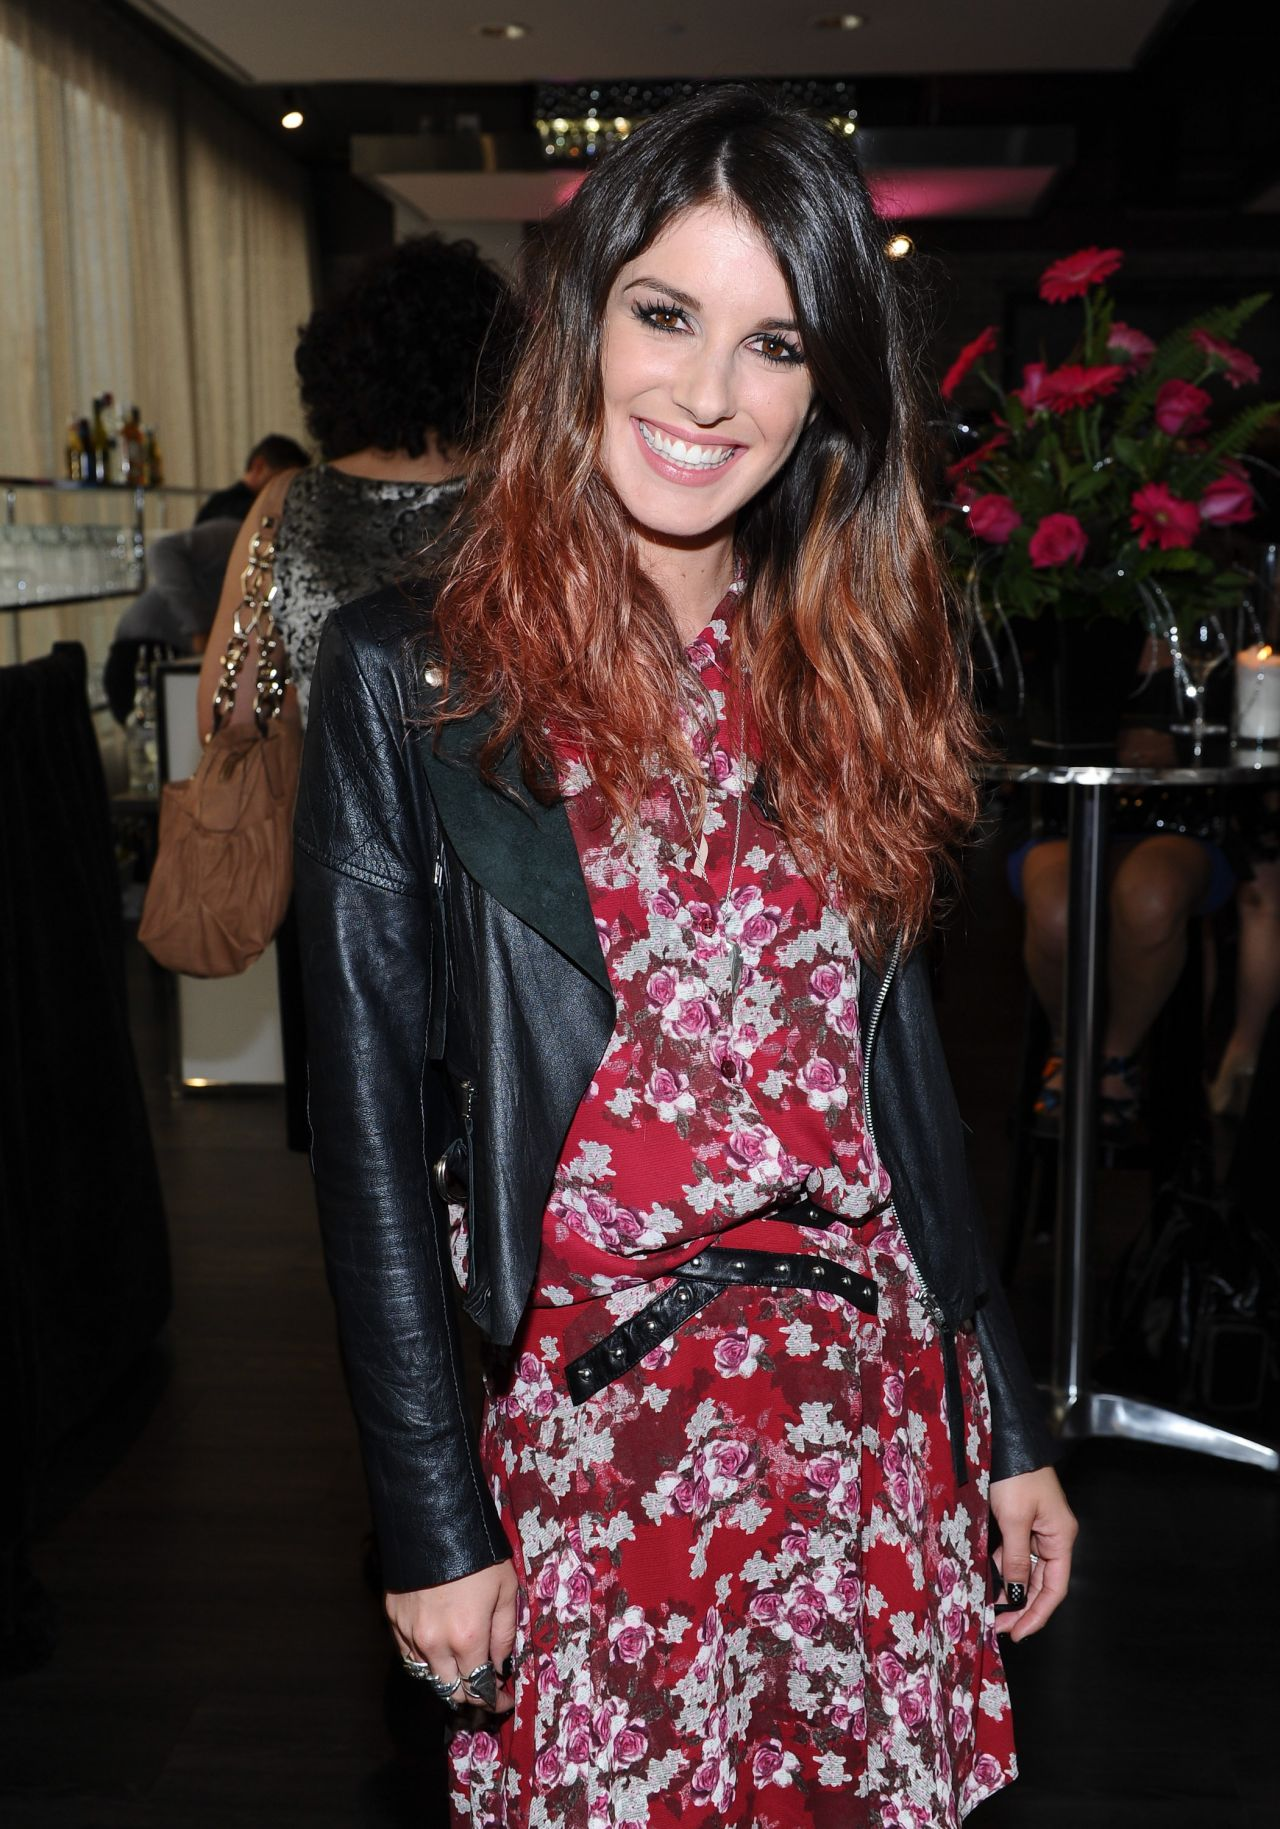 Shenae Grimes at Annabelle Cosmetics Launch Party - June 2014